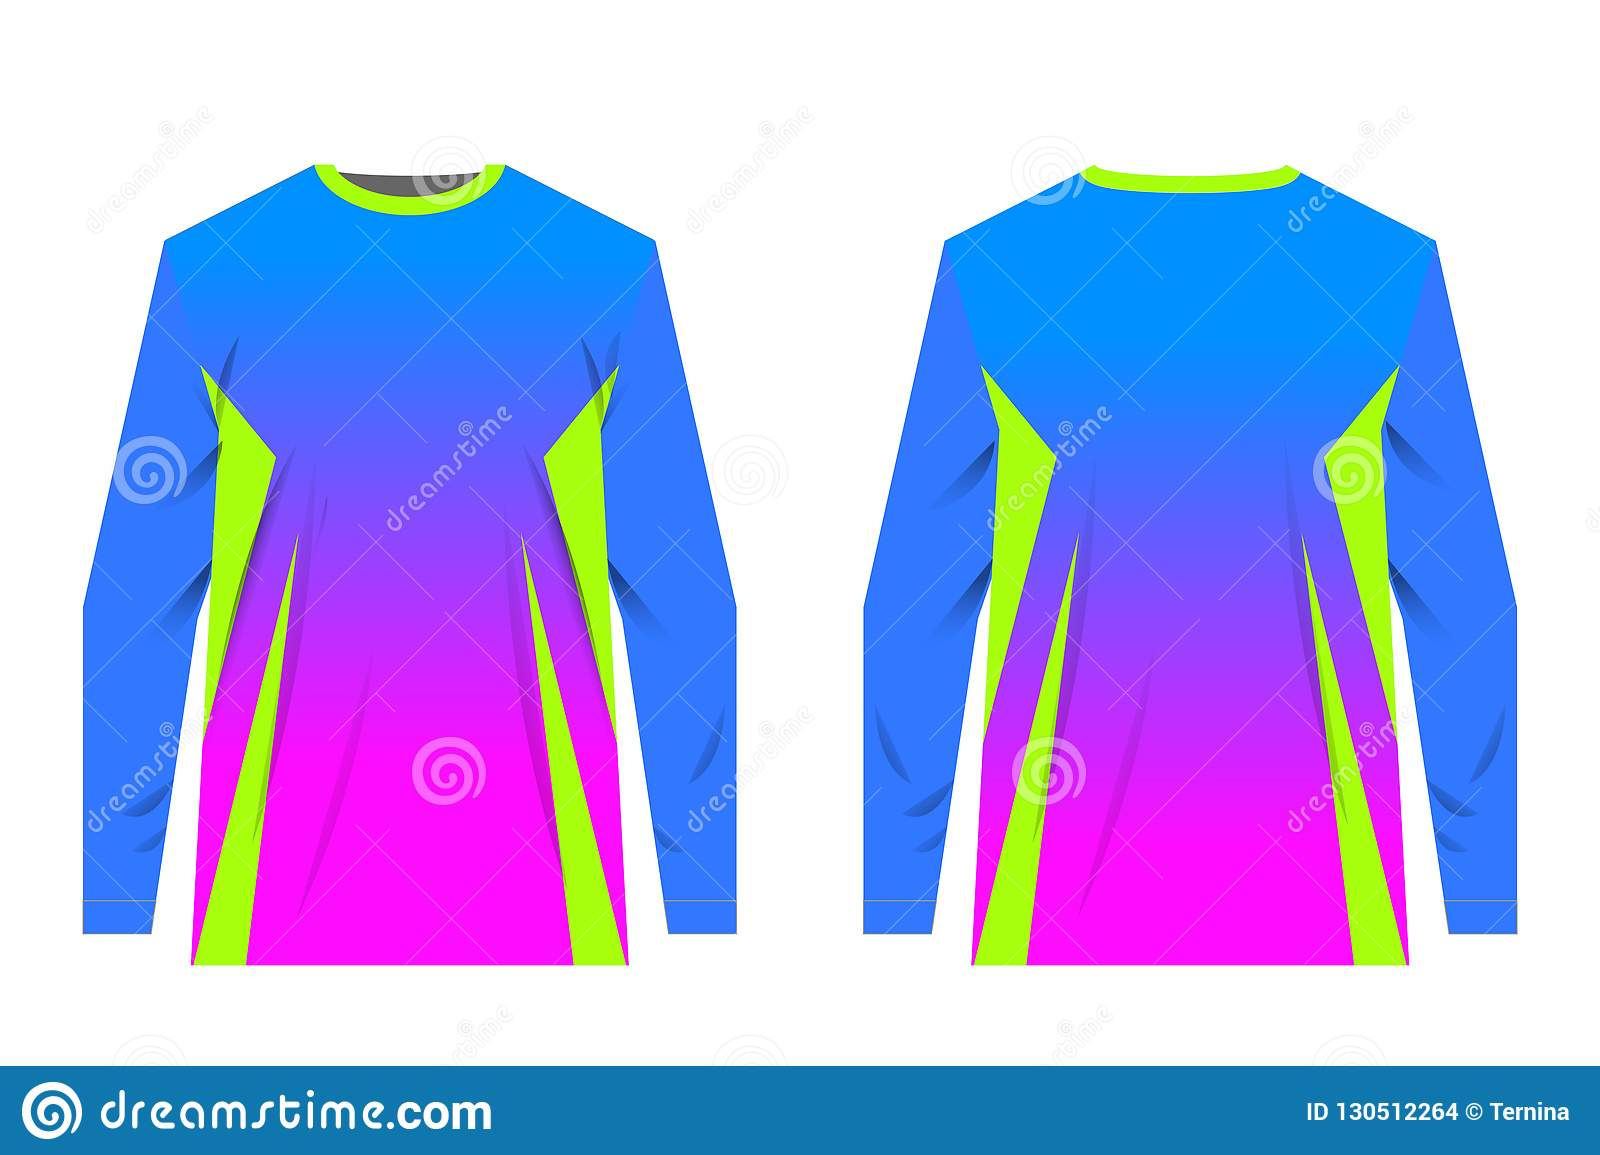 Jersey Design Templates Stock Vector Illustration Of Sublimation